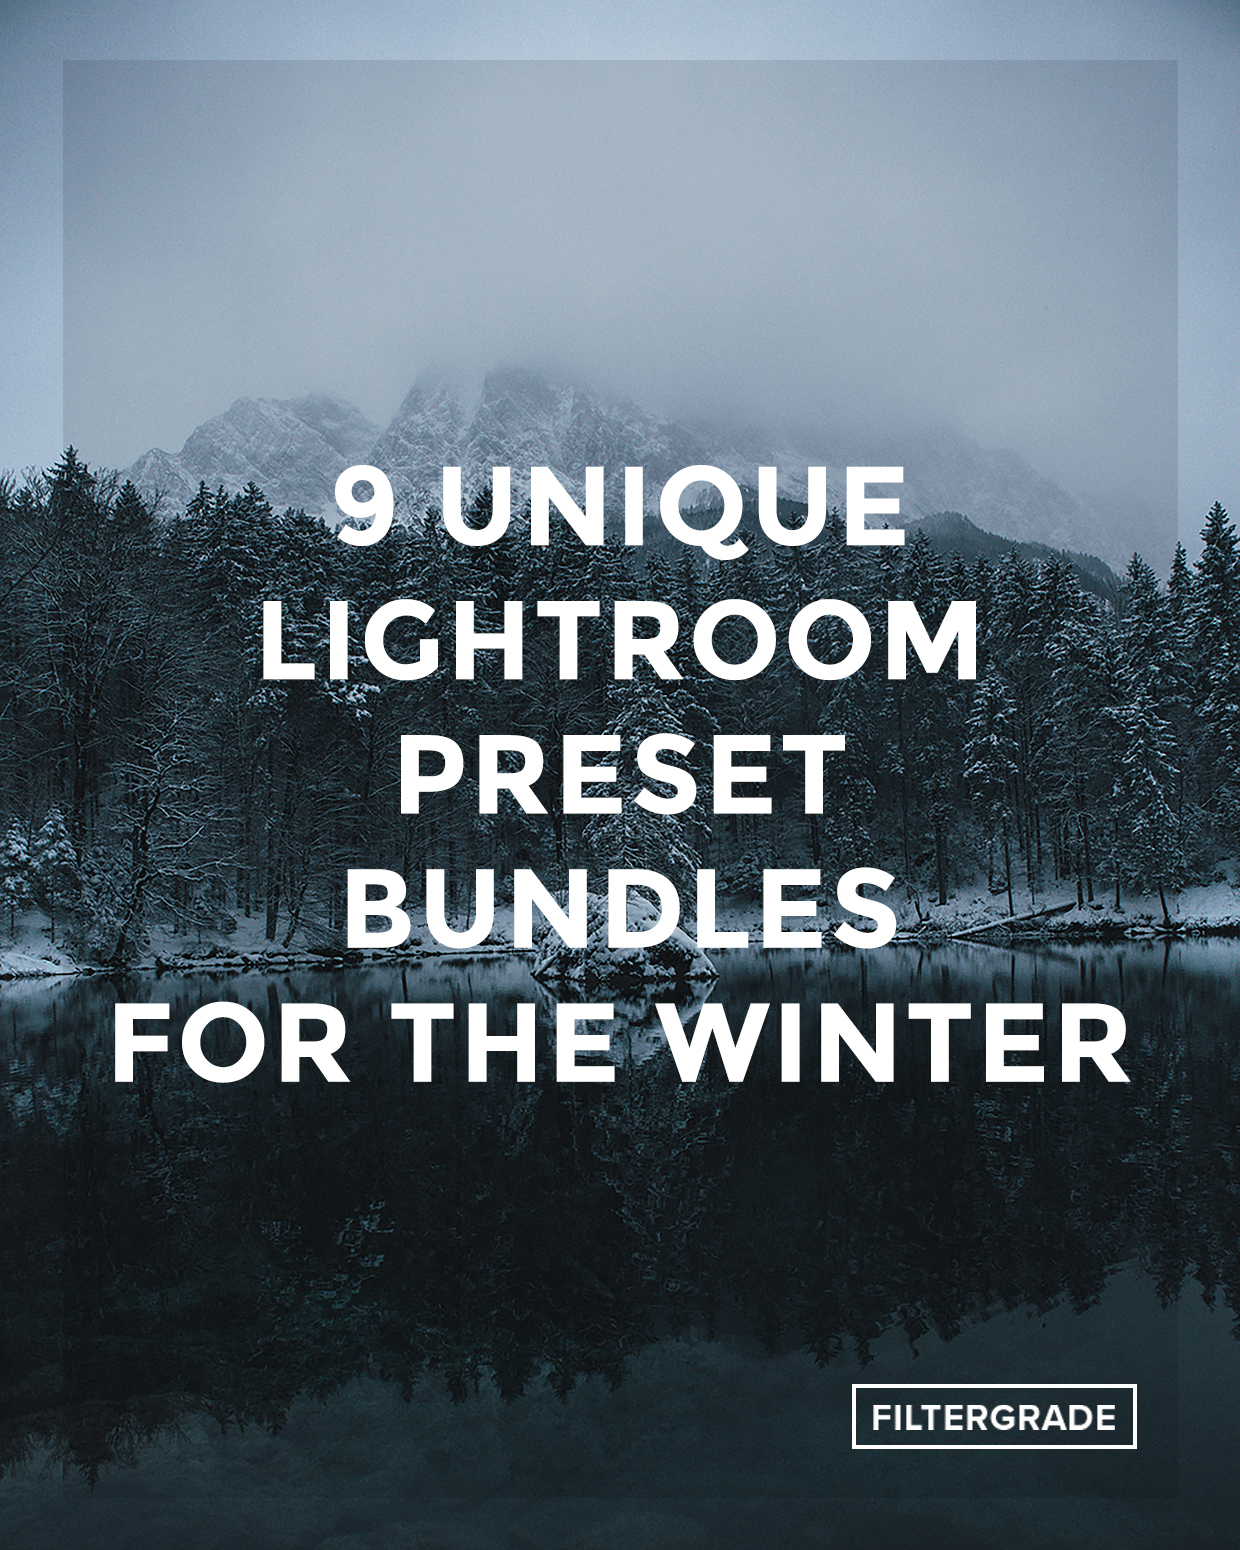 *Featured - 9 Unique Lightroom Preset Bundles for the Winter - FilterGrade